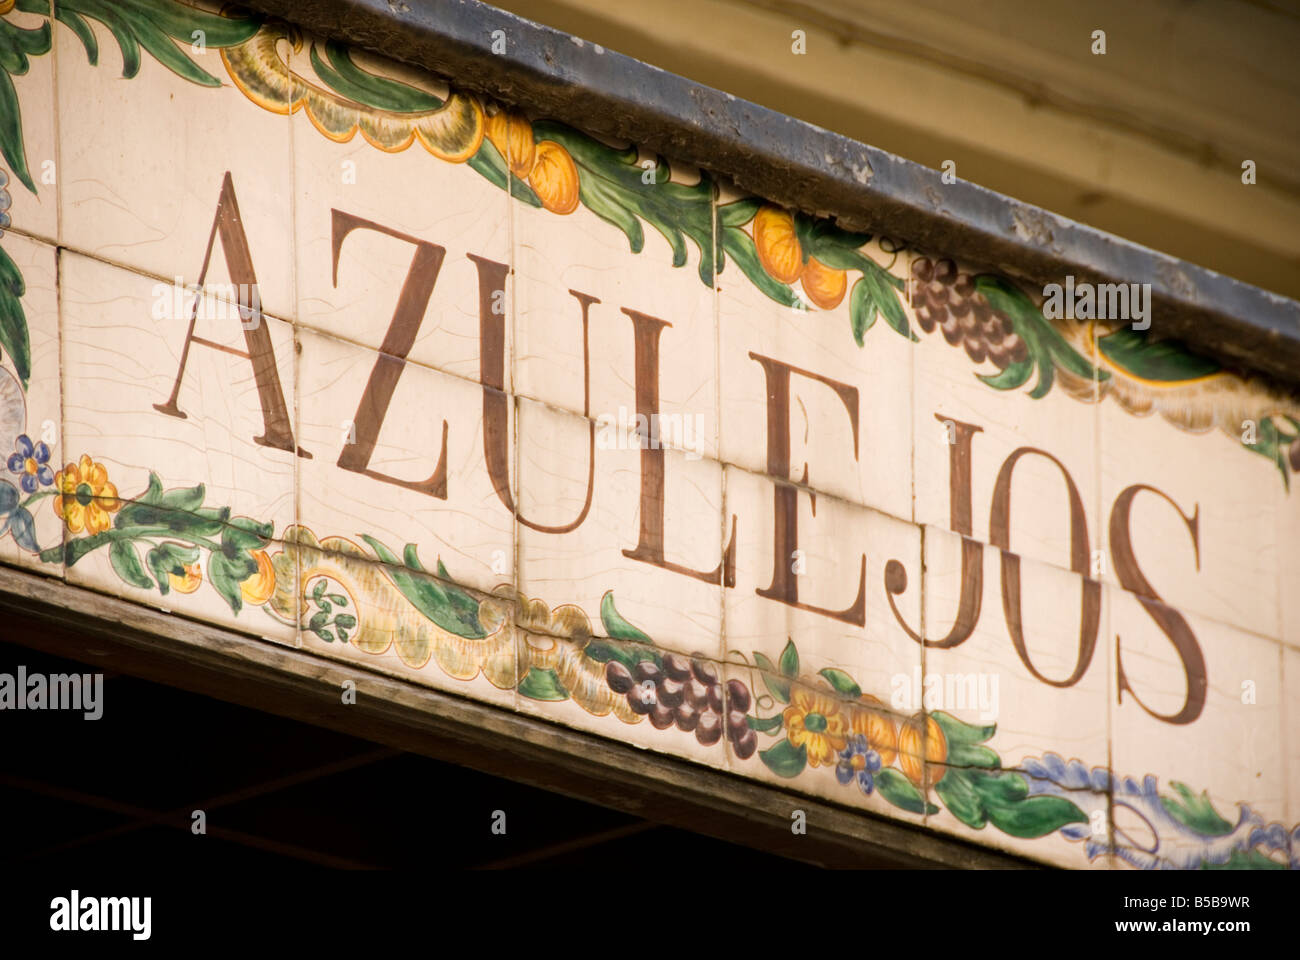 Detail of old shop sign of hand painted tiles or Azulejos in the historical city centre of Valencia Spain - Stock Image